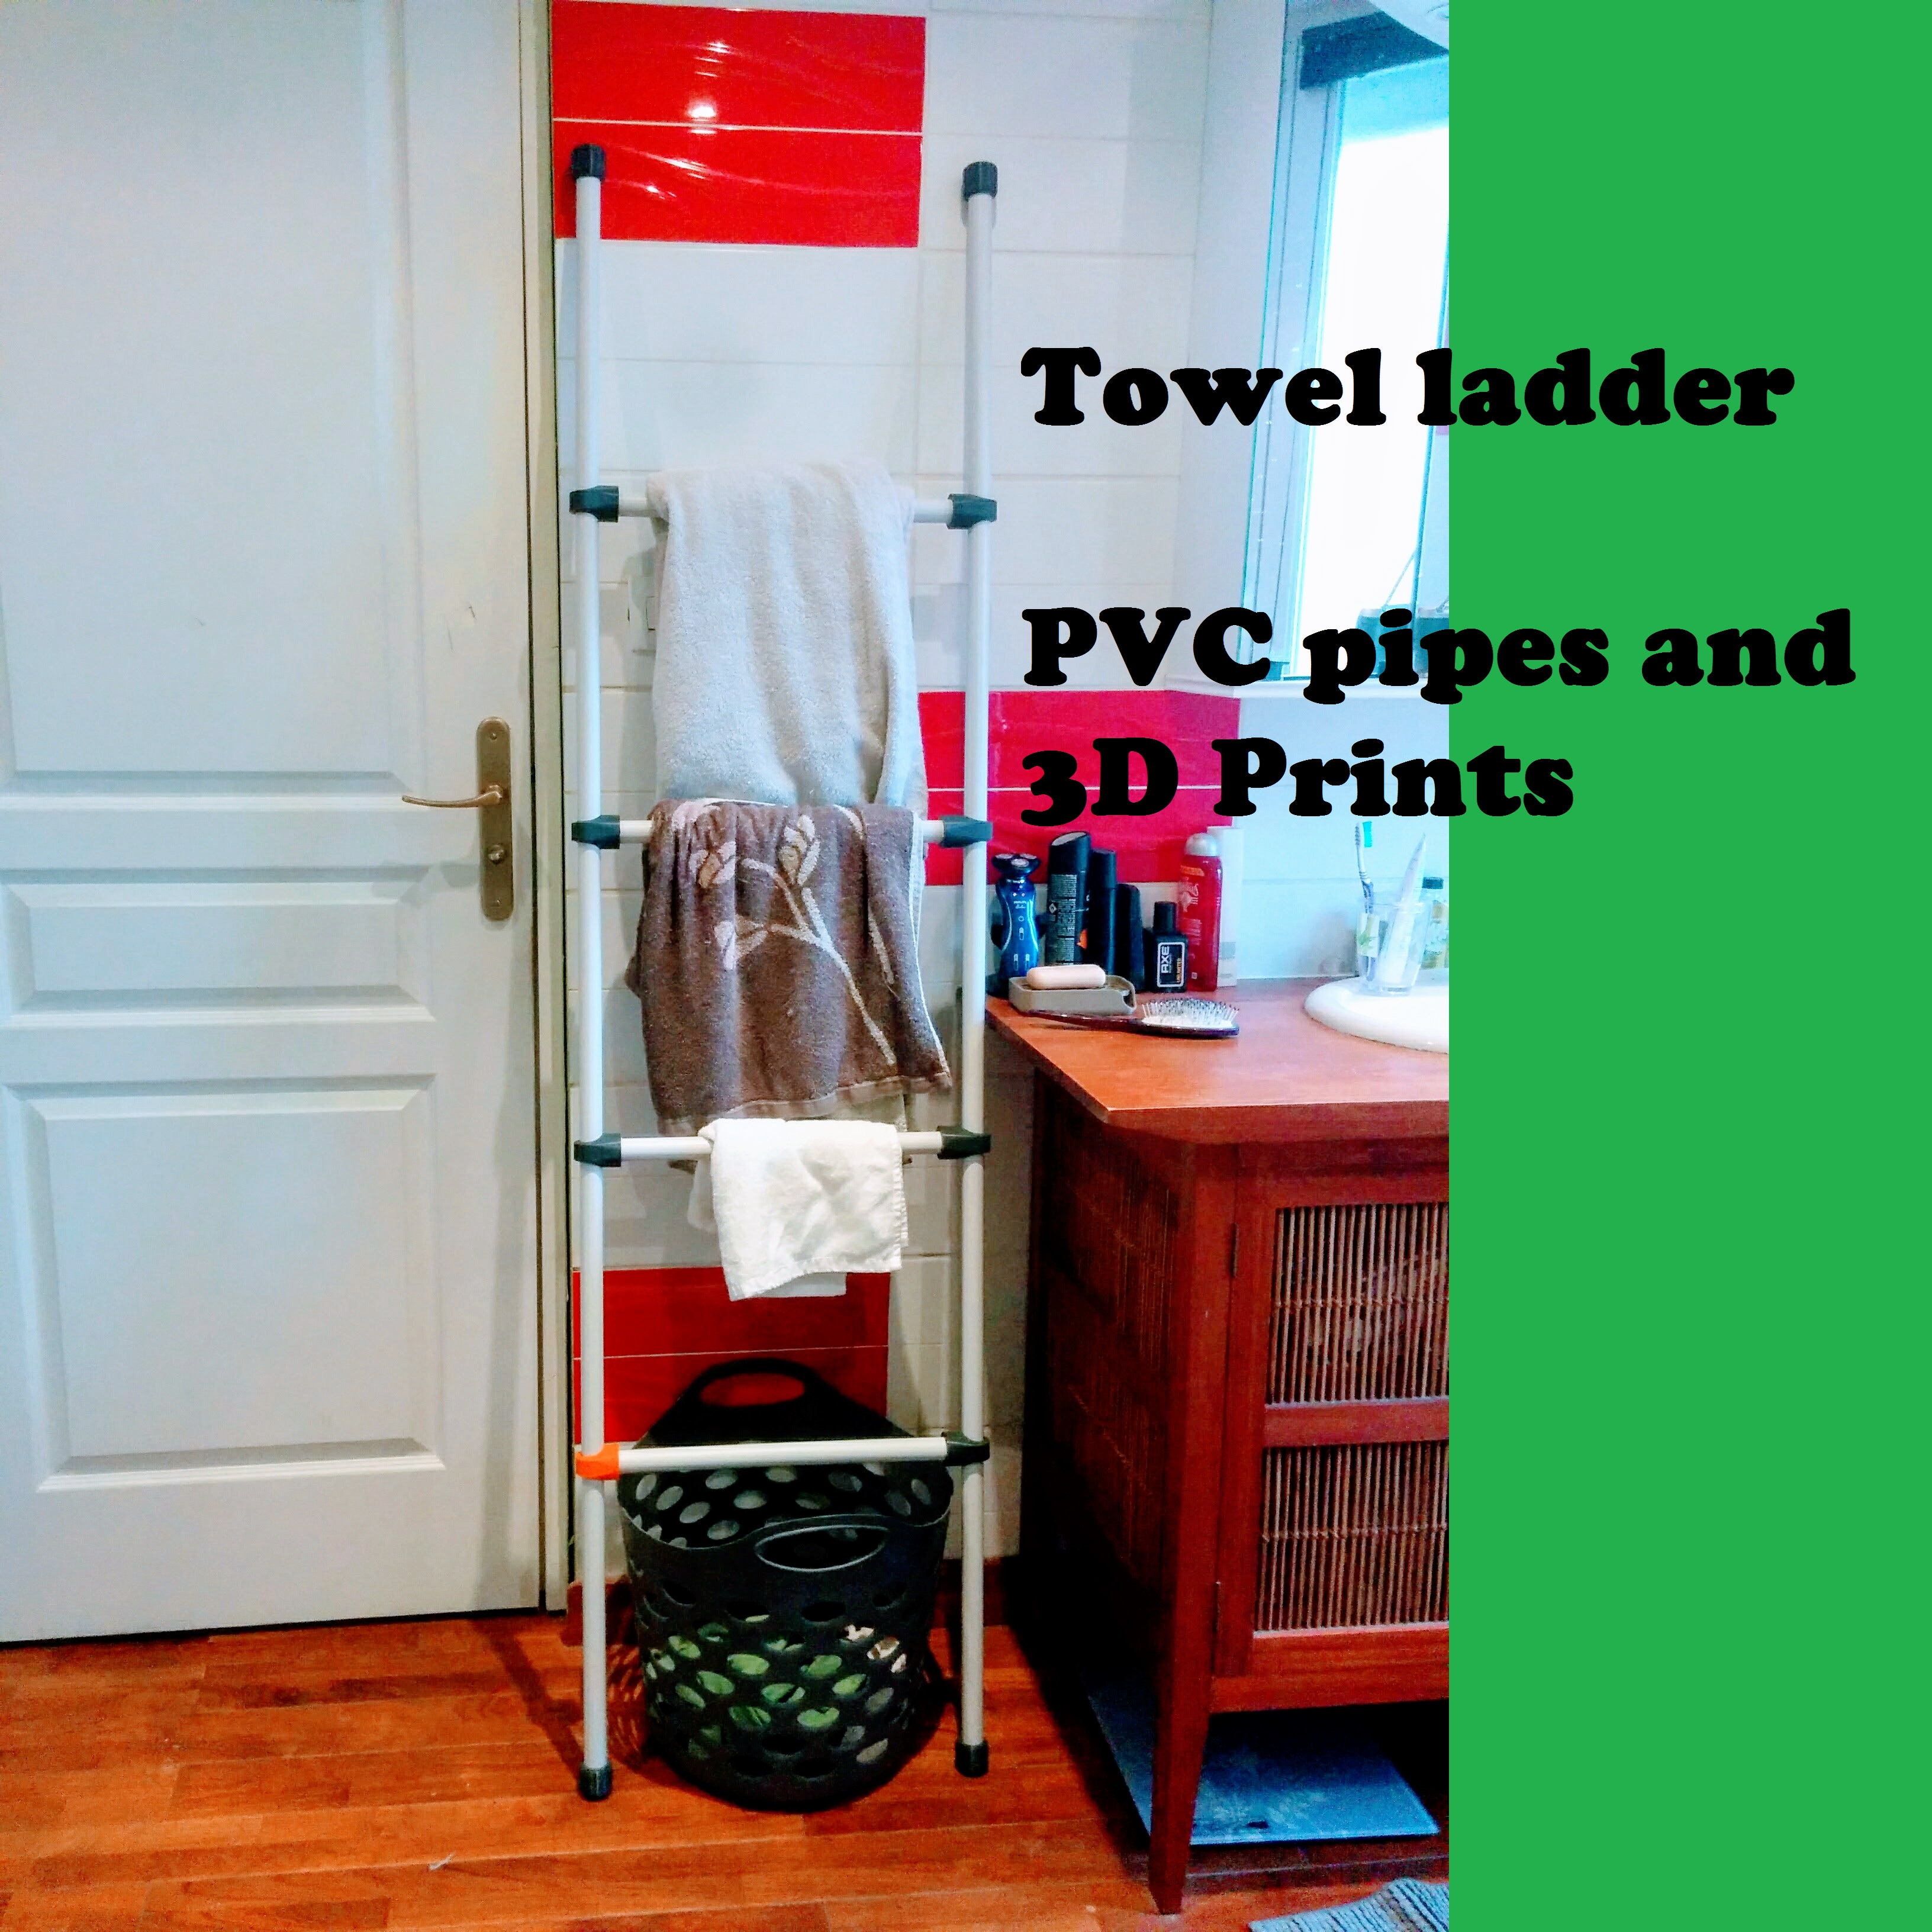 Picture of PVC Pipe and 3D-Printed Towel Ladder